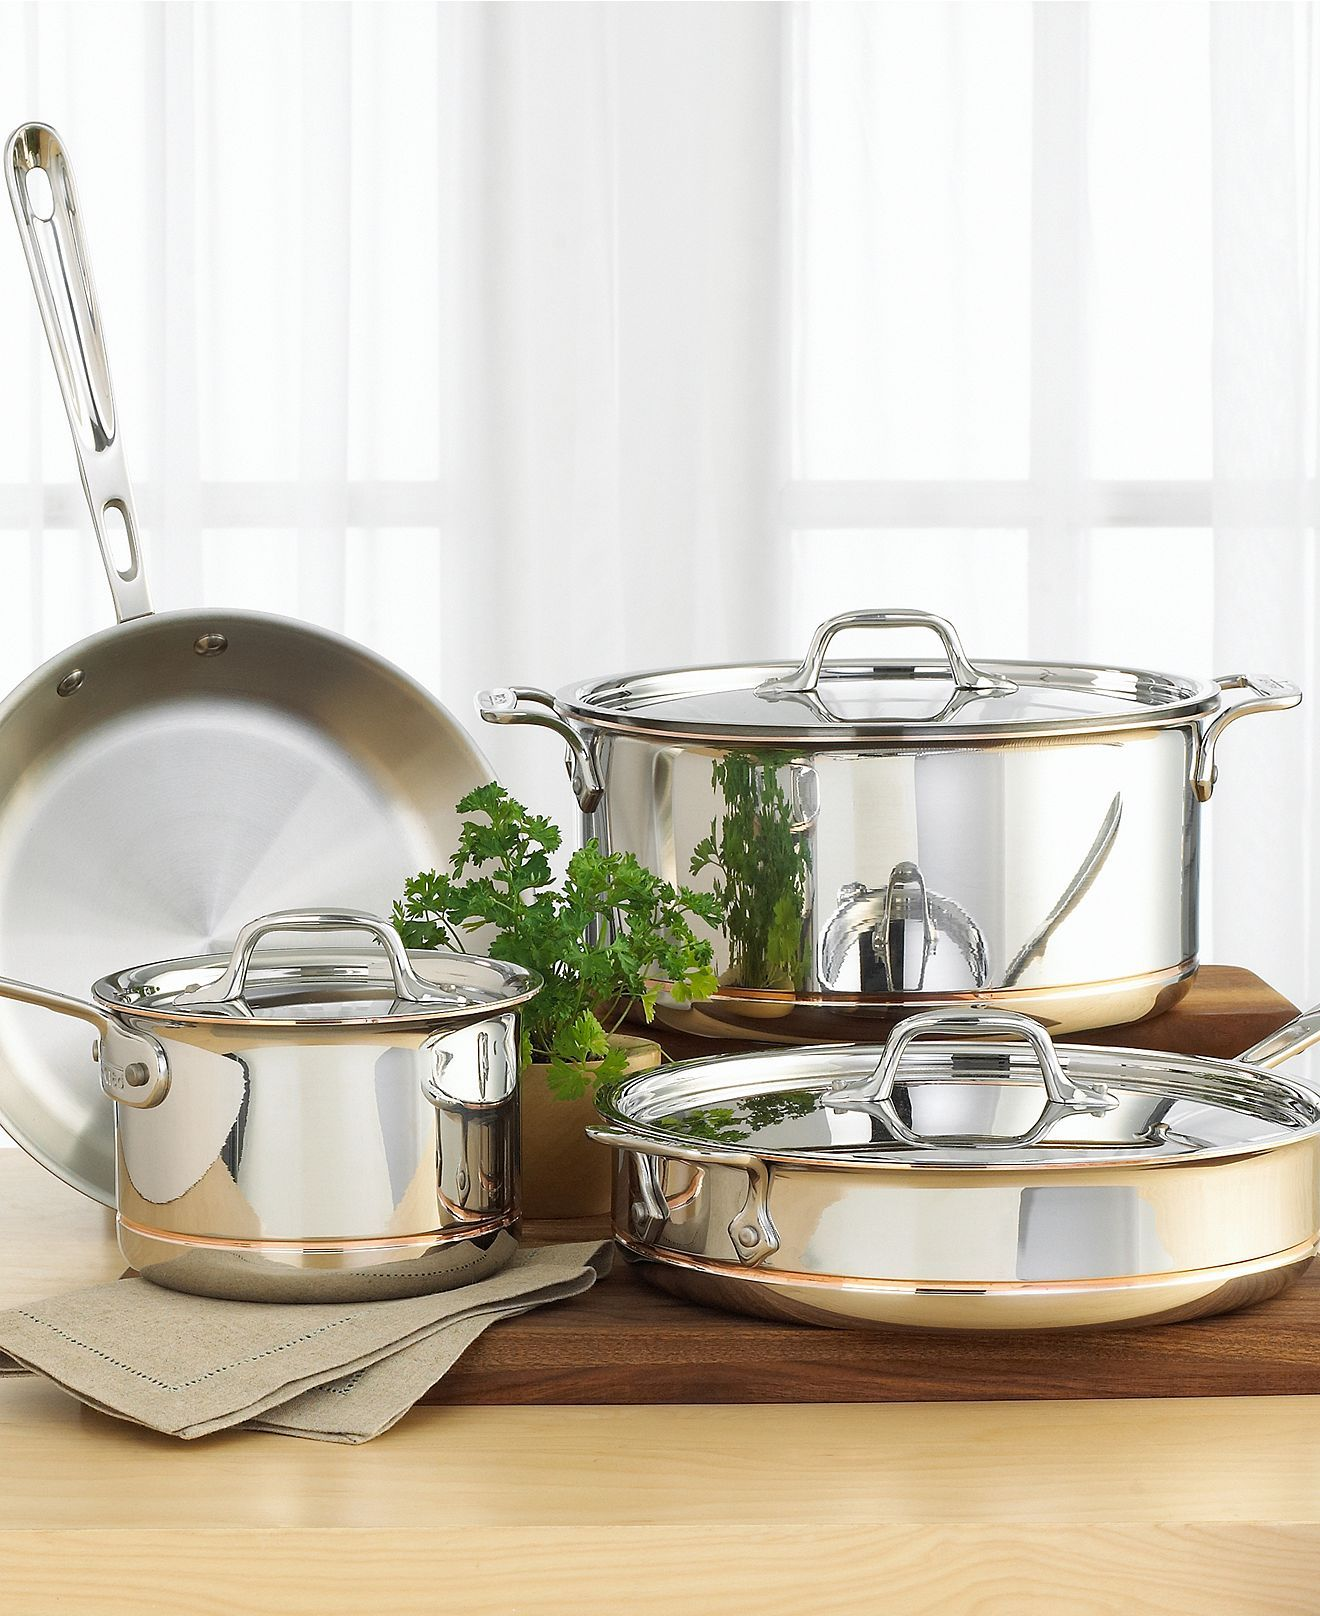 All Clad Copper Core 7 Piece Cookware Set Awesome Design